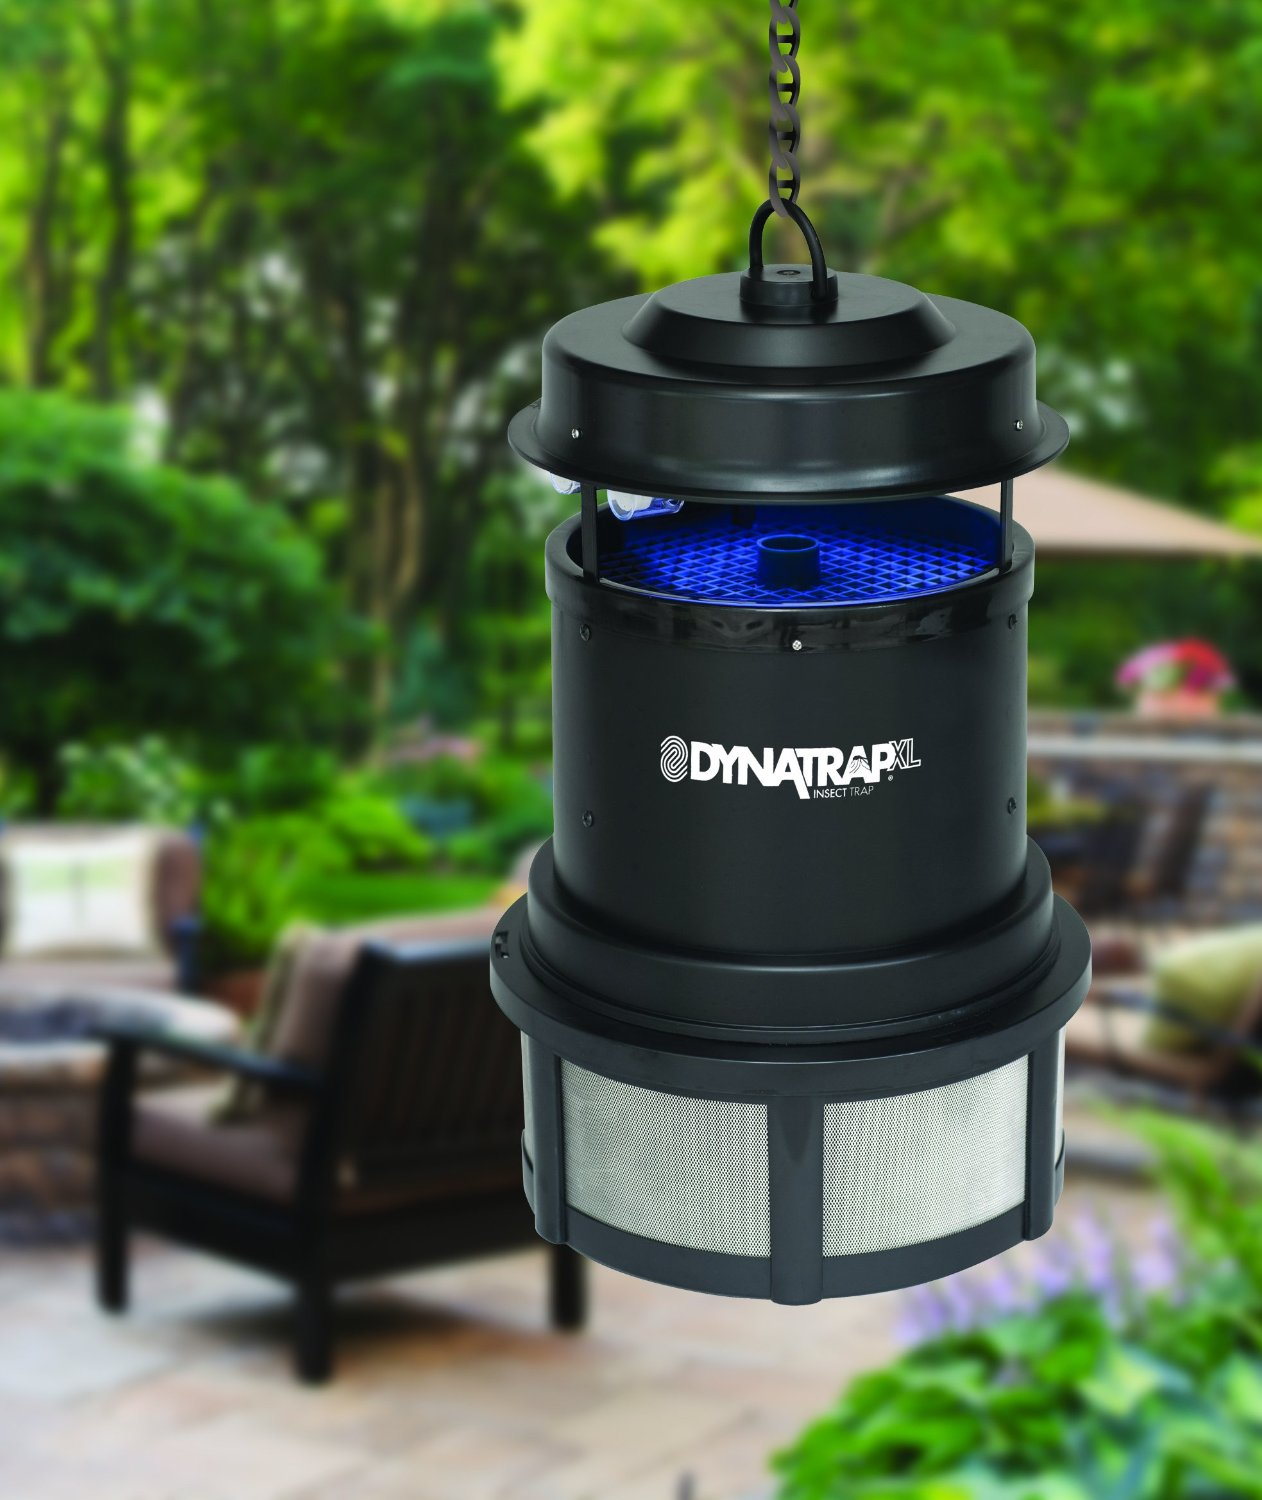 Dynatrap mosquito and insect trap for Dynatrap insect trap